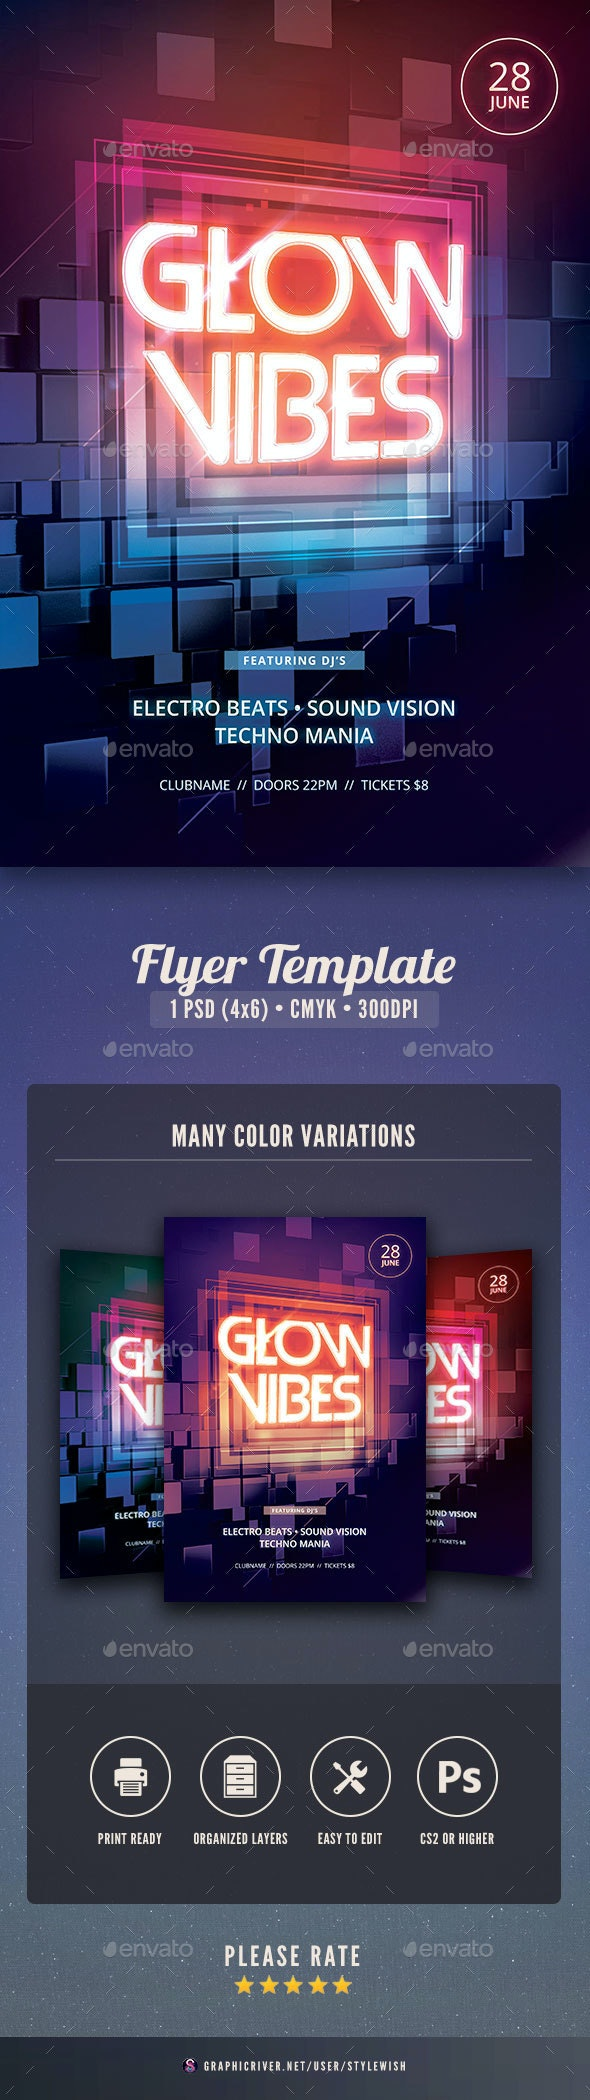 Glow Vibes Flyer - Clubs & Parties Events